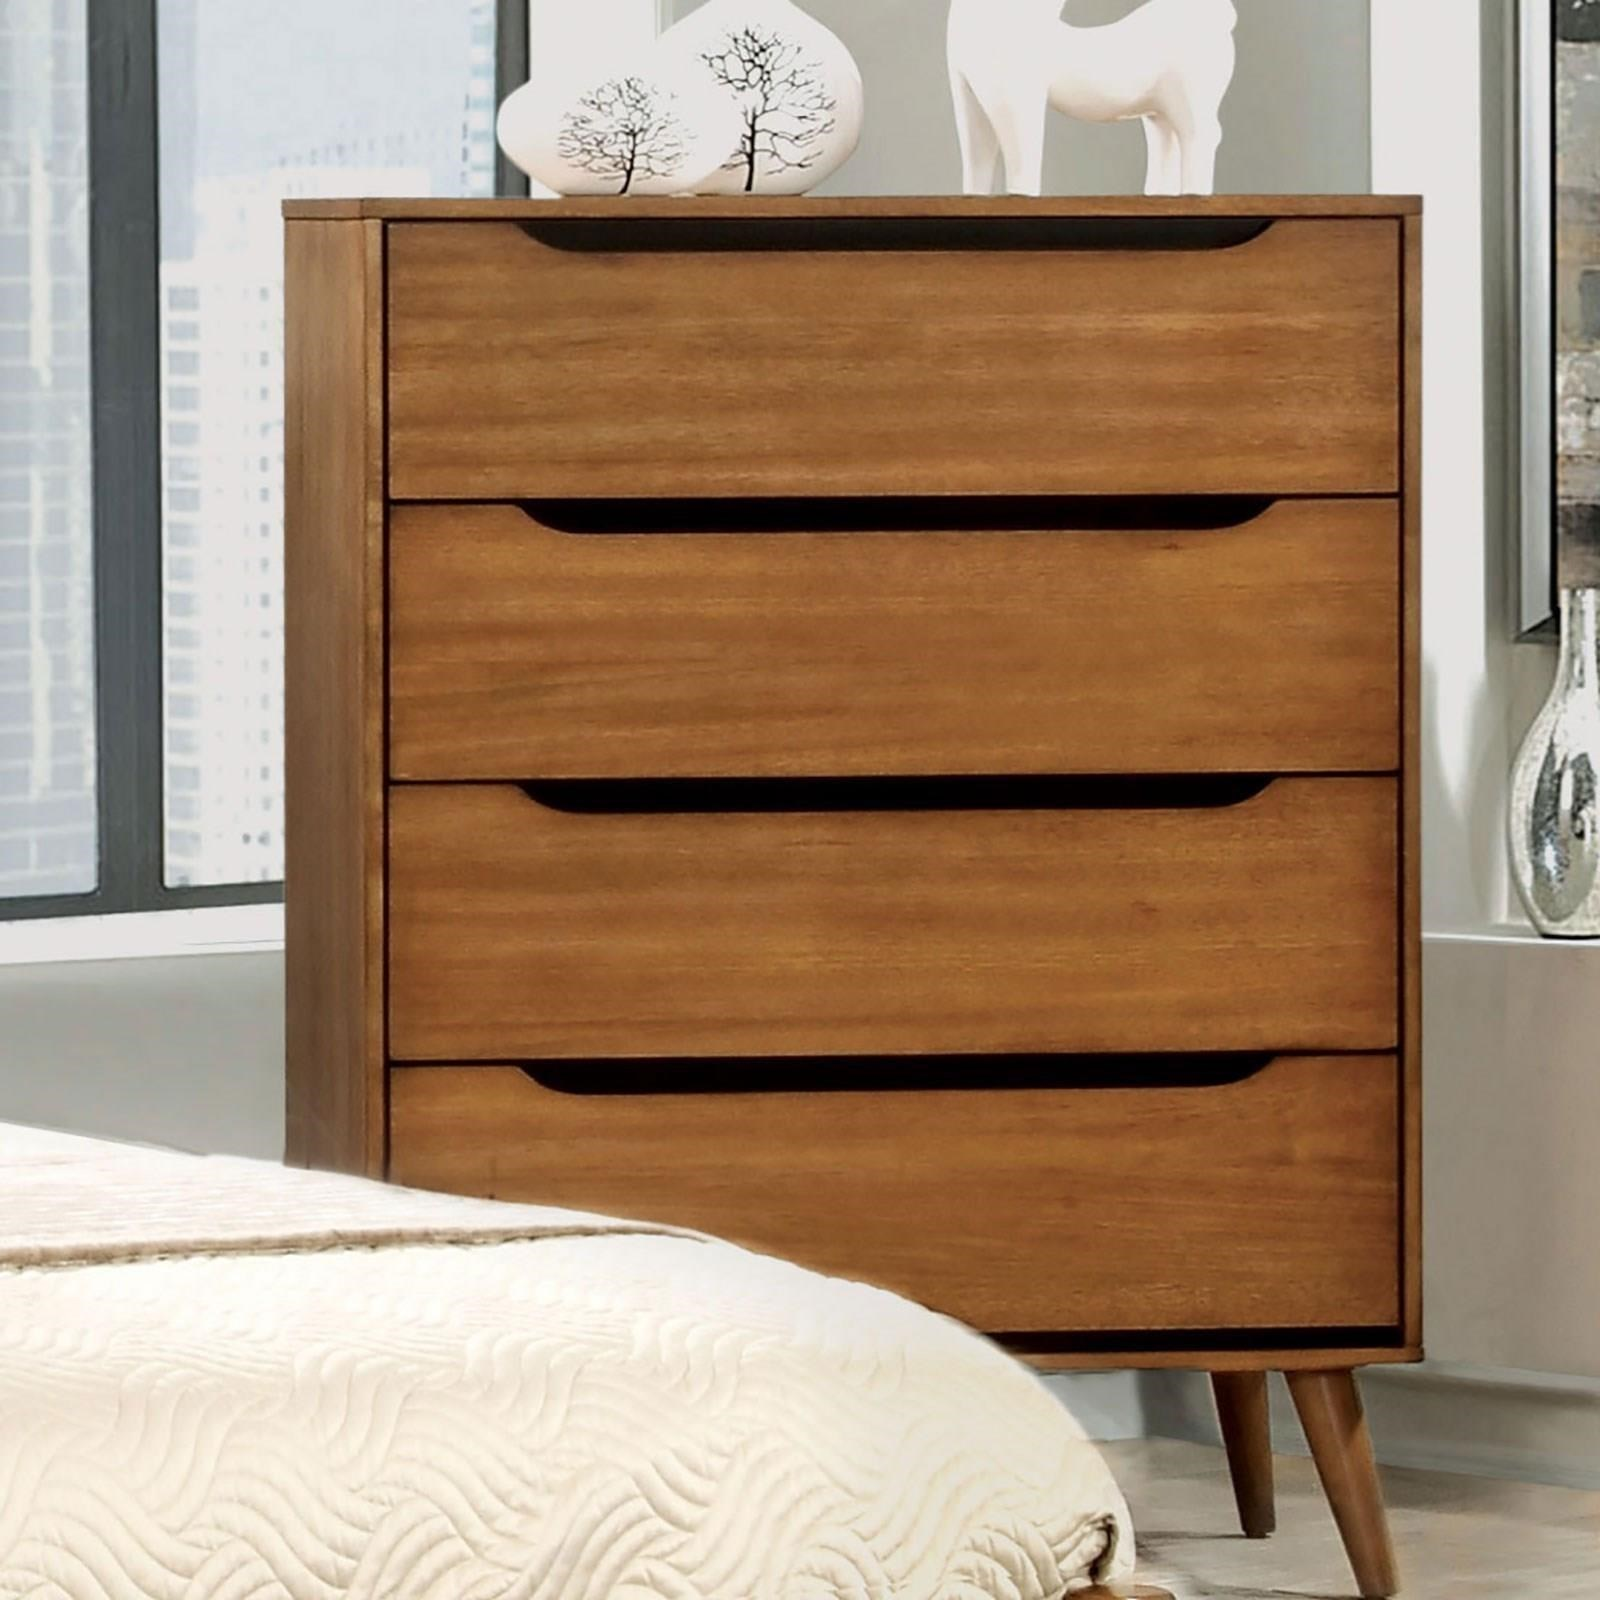 Furniture of america lennart chest rooms for less drawer chests